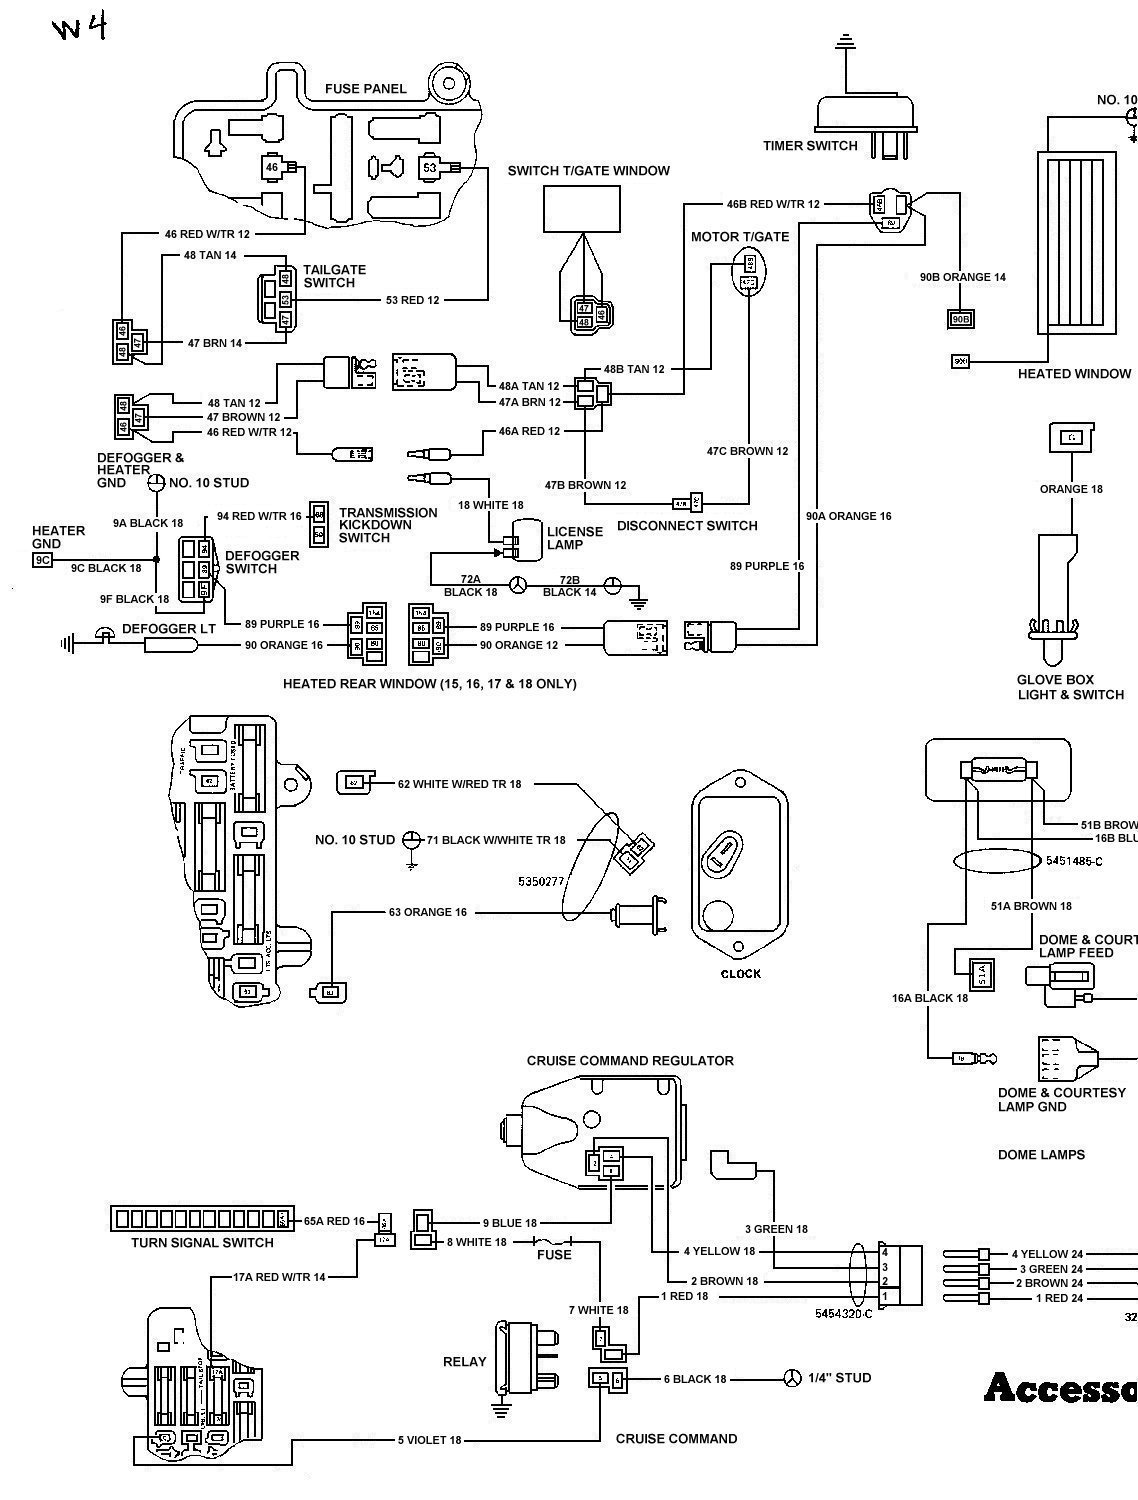 Bulk Head Wiring Diagram 1980 Jeep Cj7 - 2003 4 6l Engine Diagram for Wiring  Diagram Schematics | 1980 Jeep Wiring Diagram |  | Wiring Diagram Schematics